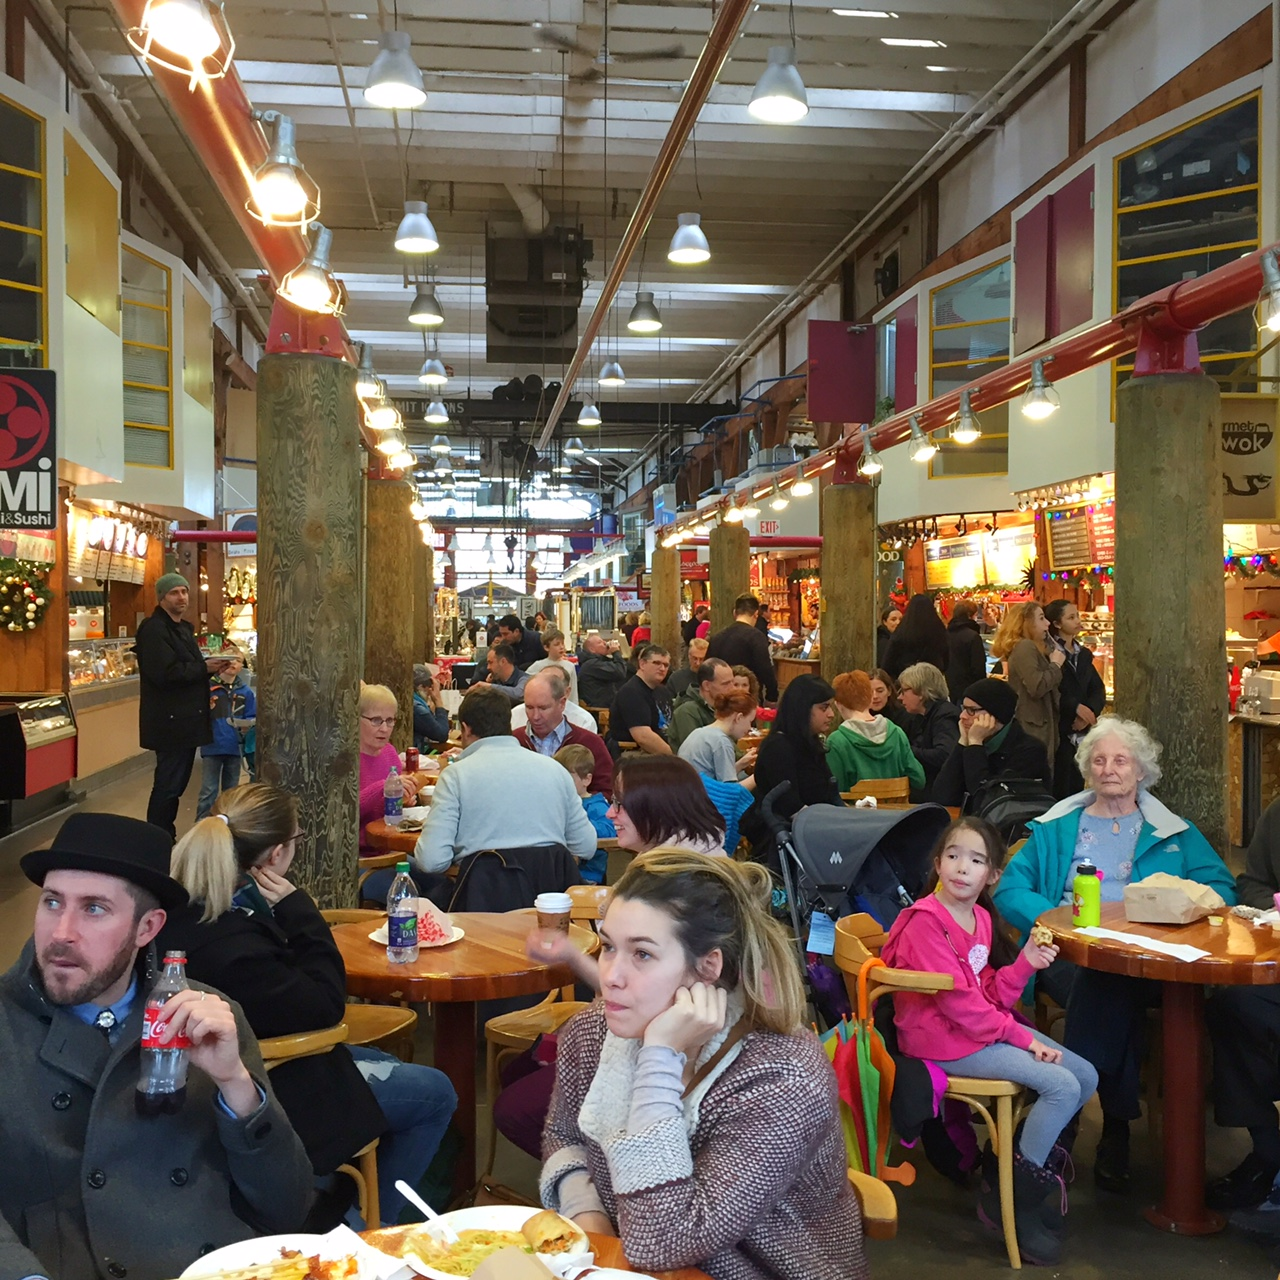 So here's that food hall I just mentioned. It gets pretty packed and sometimes you might need to share a table, but it's a great way to make new friends :)